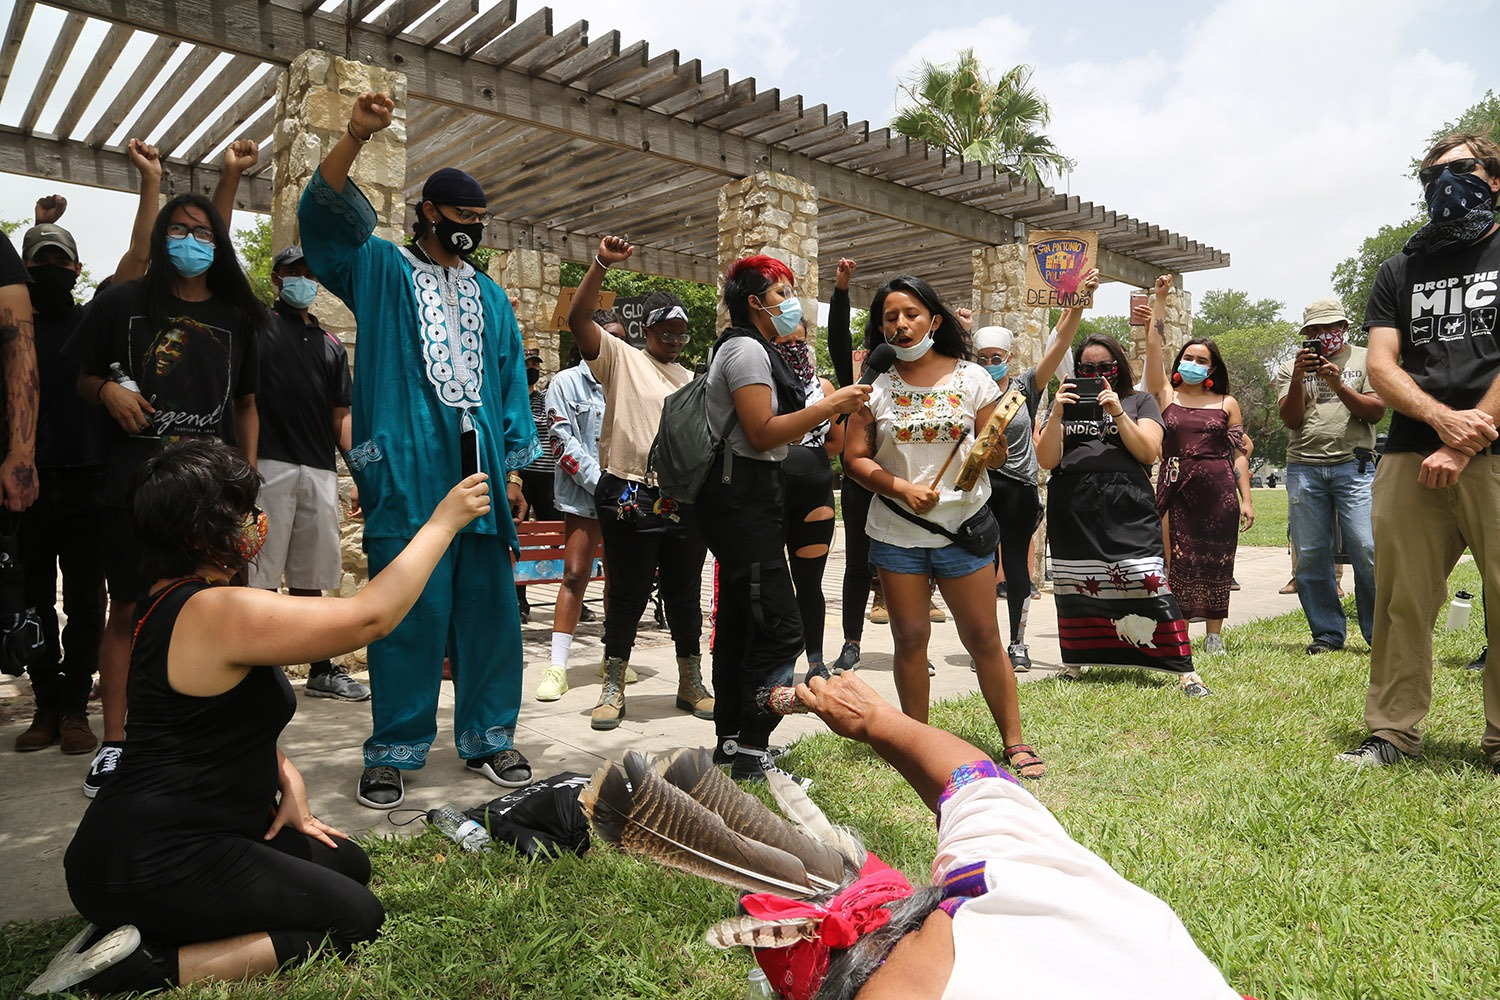 Ceiba leads a group of roughly 50 advocates for the removal of the Christopher Columbus statue in song during a protest Saturday, June 27, 2020, at Columbus Park, 200 Columbus St. Photo by Ben Olivo | Heron